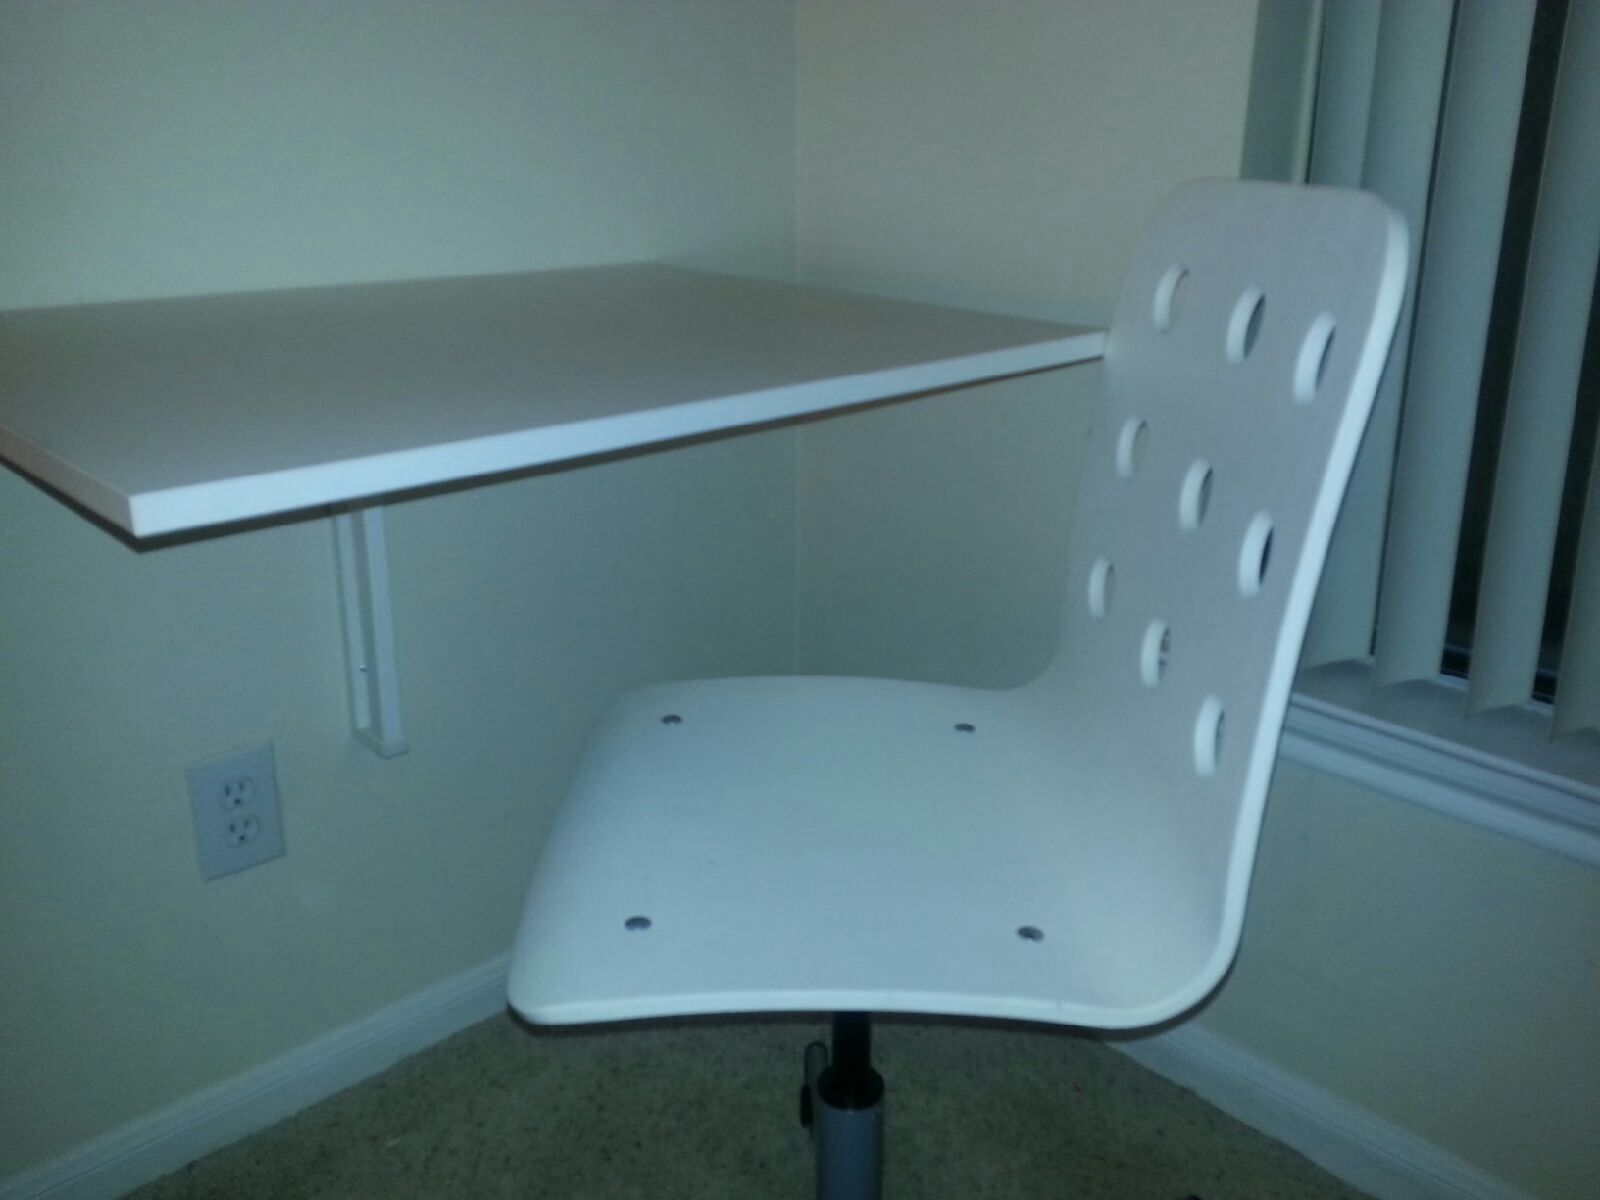 White Desk Chair In Nicefurniture S Garage Mesquite Tx For 20 00 Swivel From Ikea Less Than 2 Yrs Old